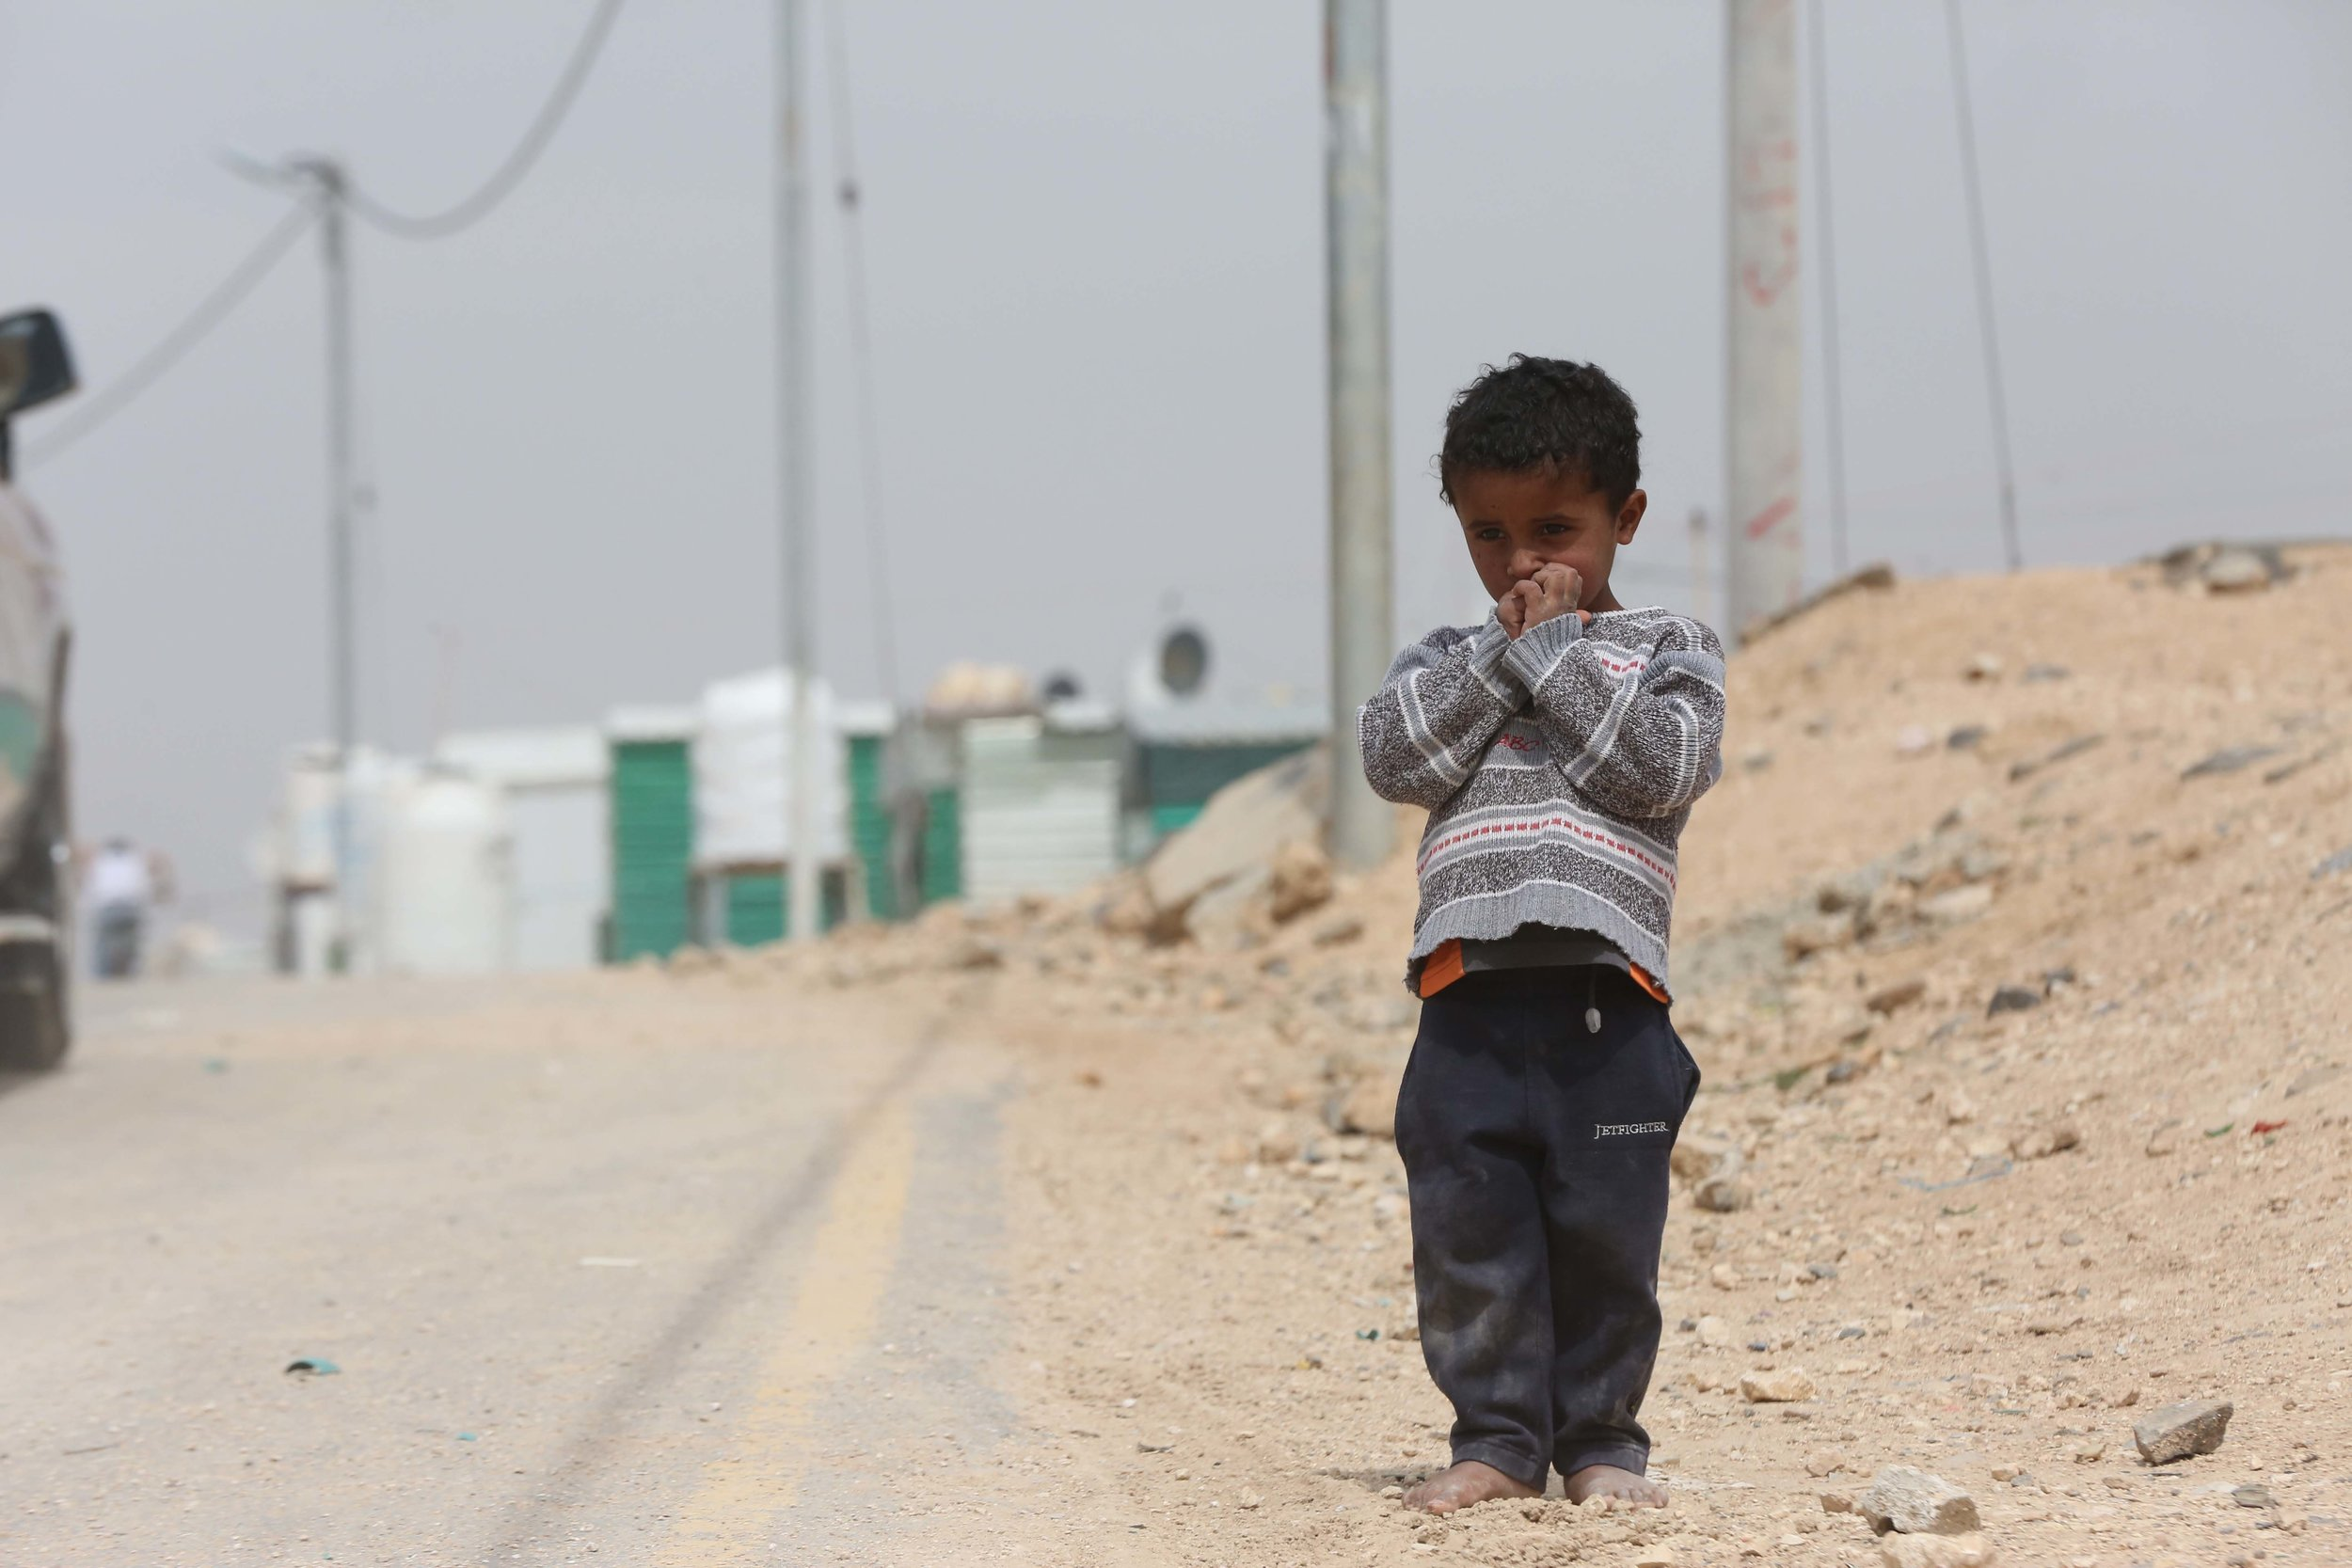 A young boy at the Zaatari Refugee Camp in Jordan, where nearly 80,000 Syrian refugees are living. 27 March 2017 I Zaatari Camp, Jordan  © UN Photo/Sahem Rababah